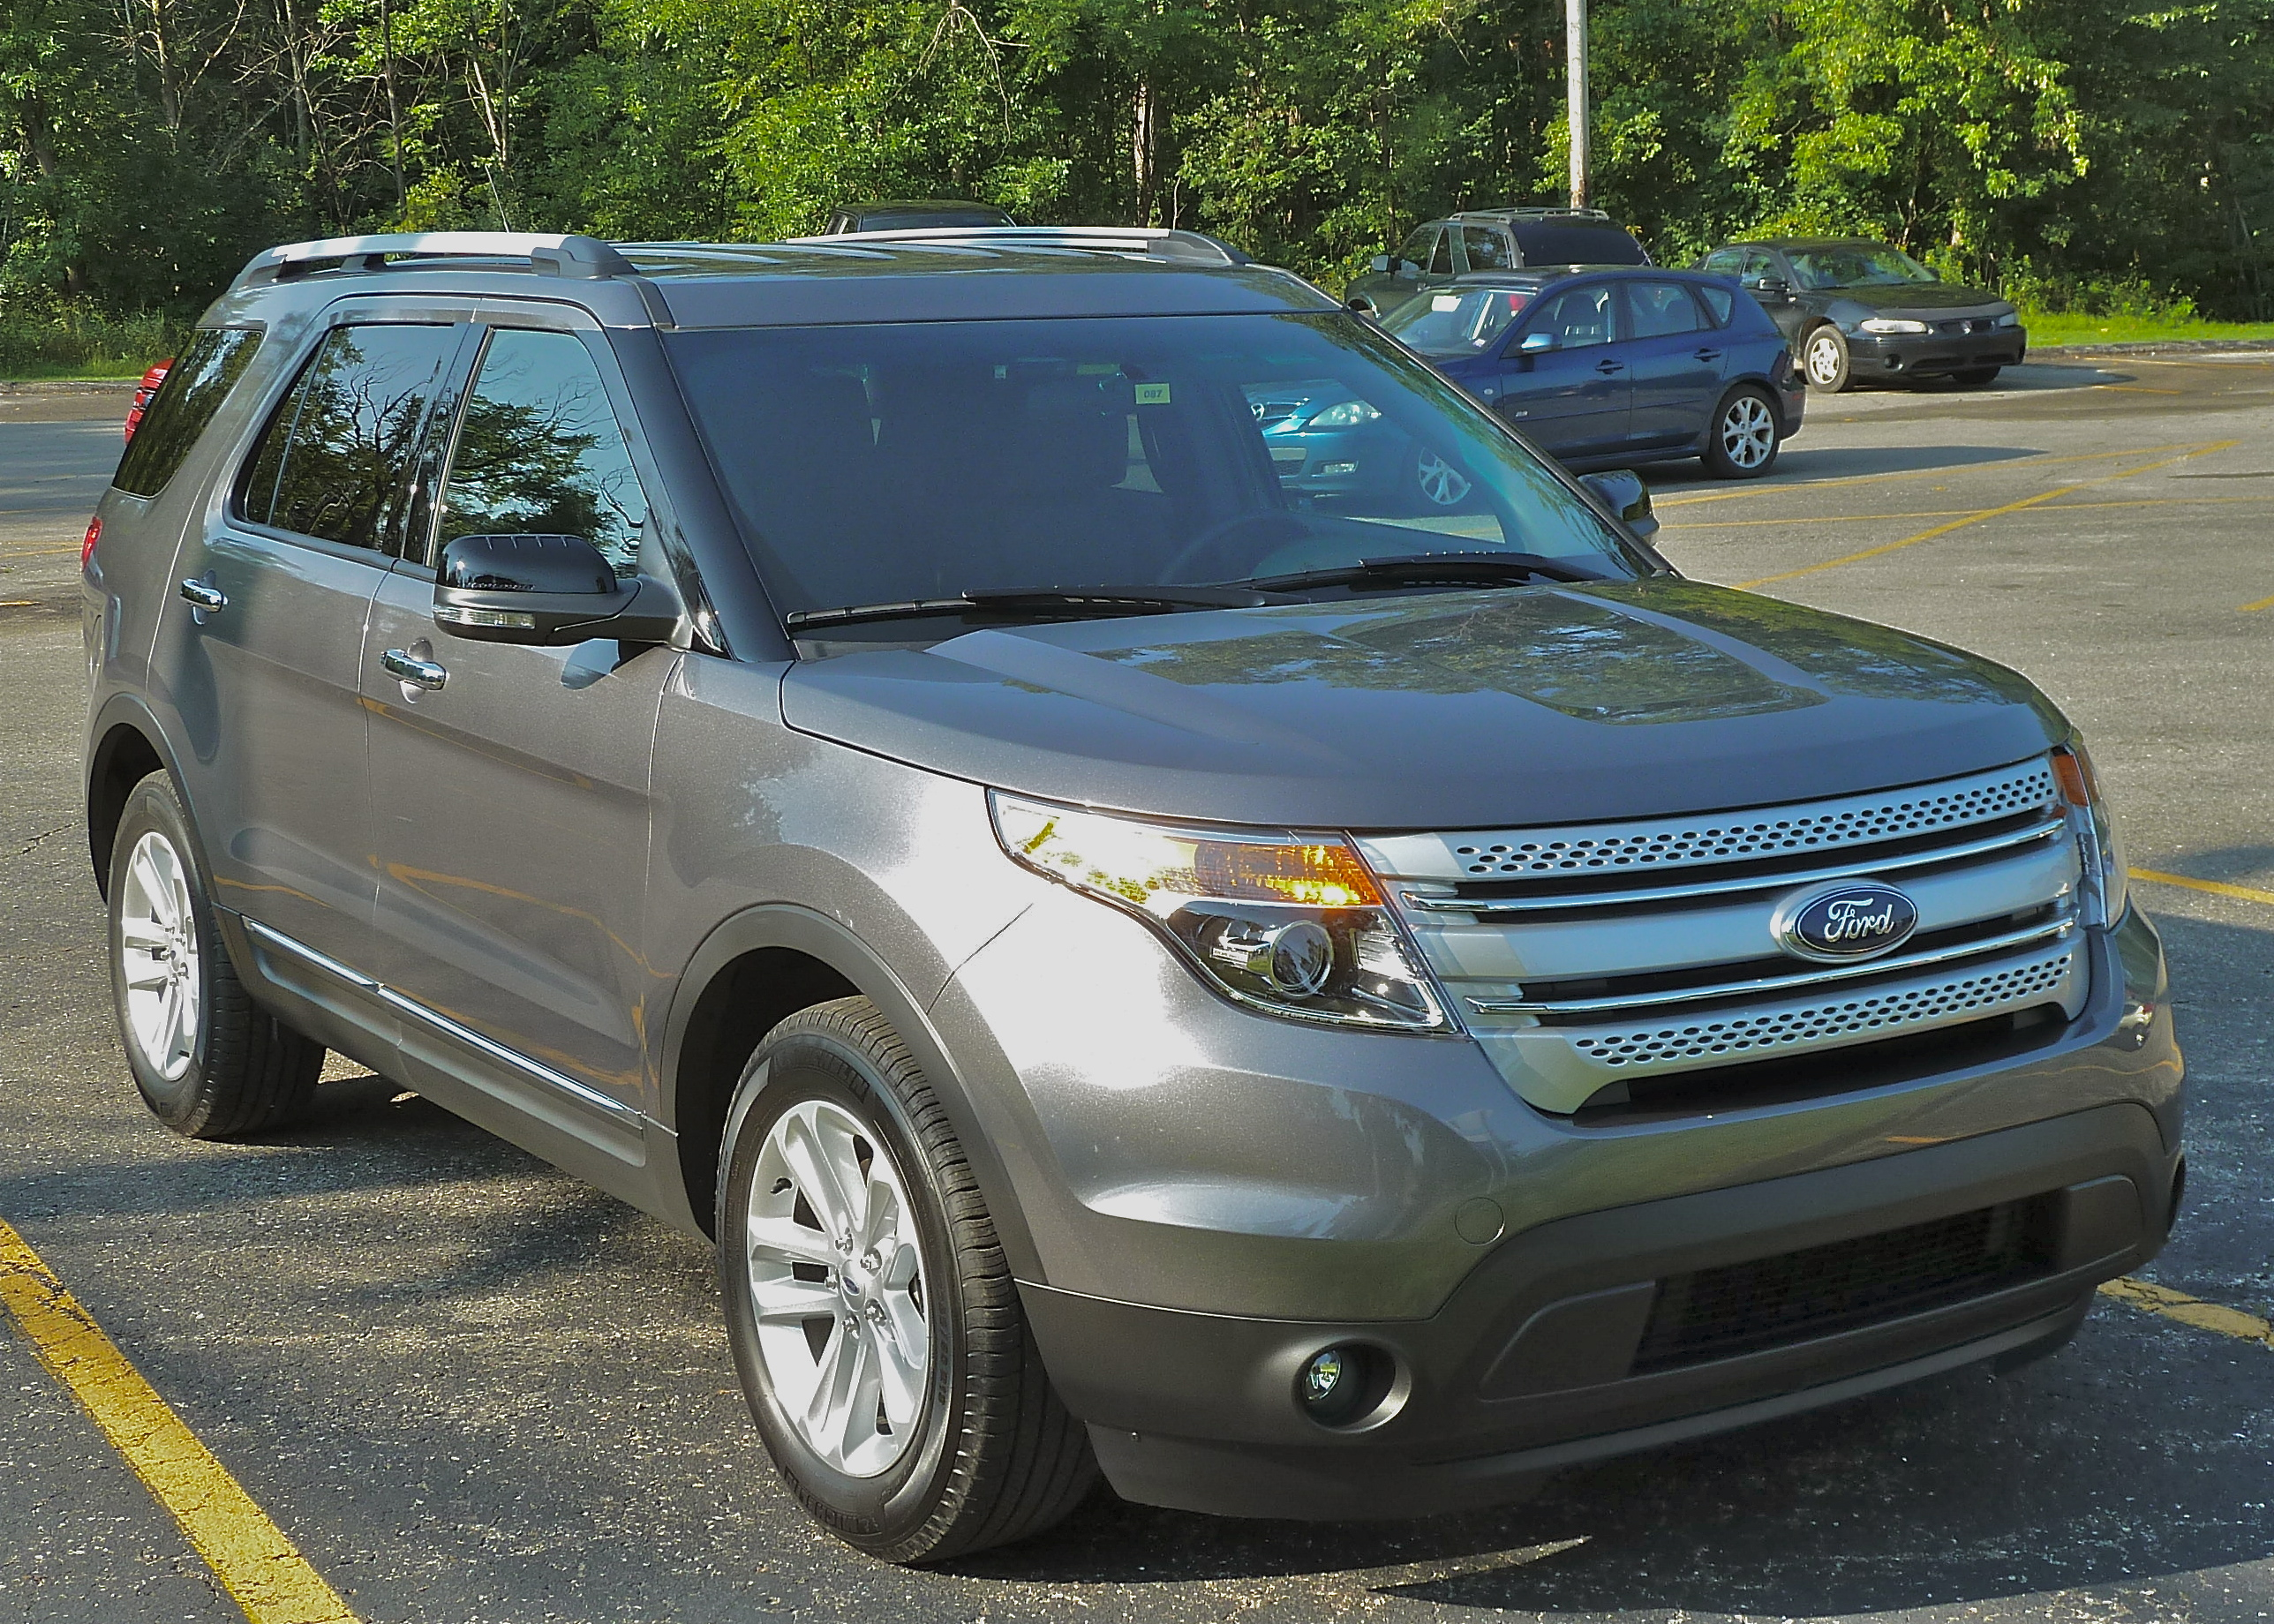 ford edge has fuel economy better than explorer ecoboost car pictures. Black Bedroom Furniture Sets. Home Design Ideas